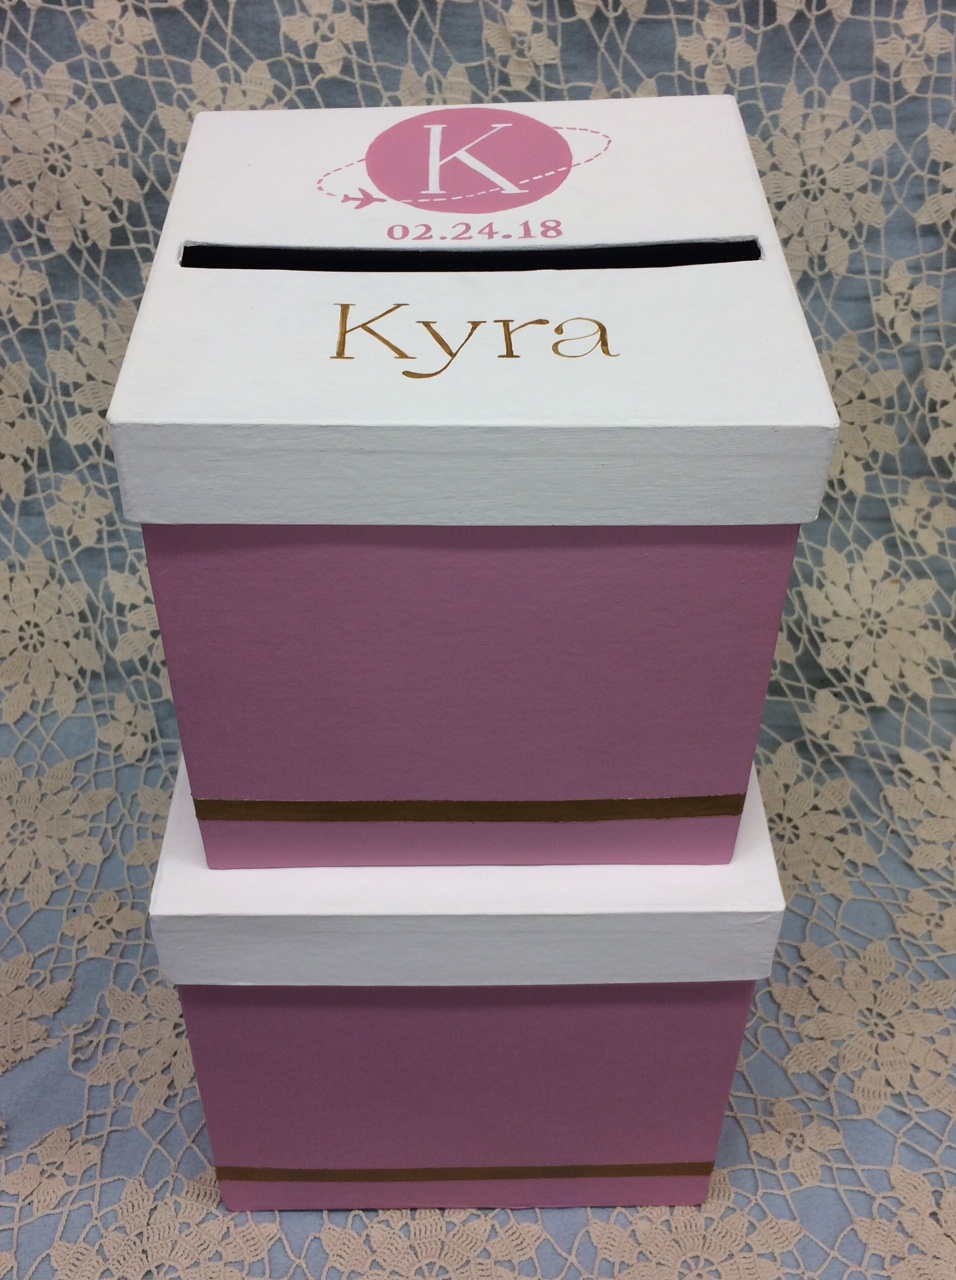 This 2 tier gift card box will hold up to 200 cards. My sample is painted mauve, gold and white but the colors can be changed to meet your needs.